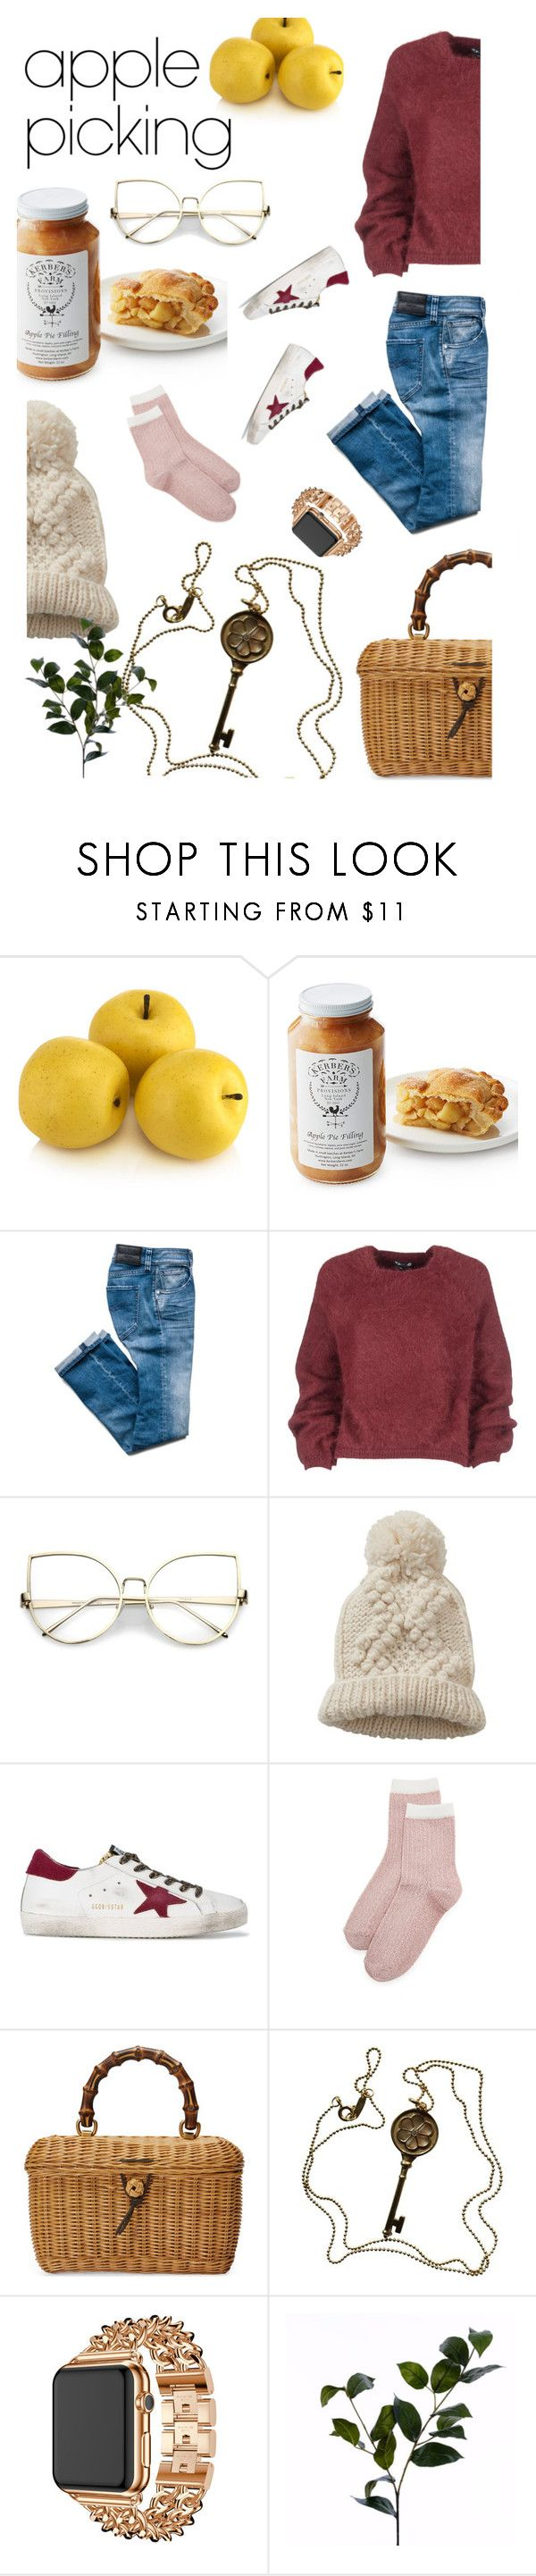 """""""Harvest Time: Apple Picking"""" by valeb ❤ liked on Polyvore featuring Tom Ford, Betty Barclay, Golden Goose, Liana Clothing, Gucci, Tiffany & Co., Apple and Wyld Home"""